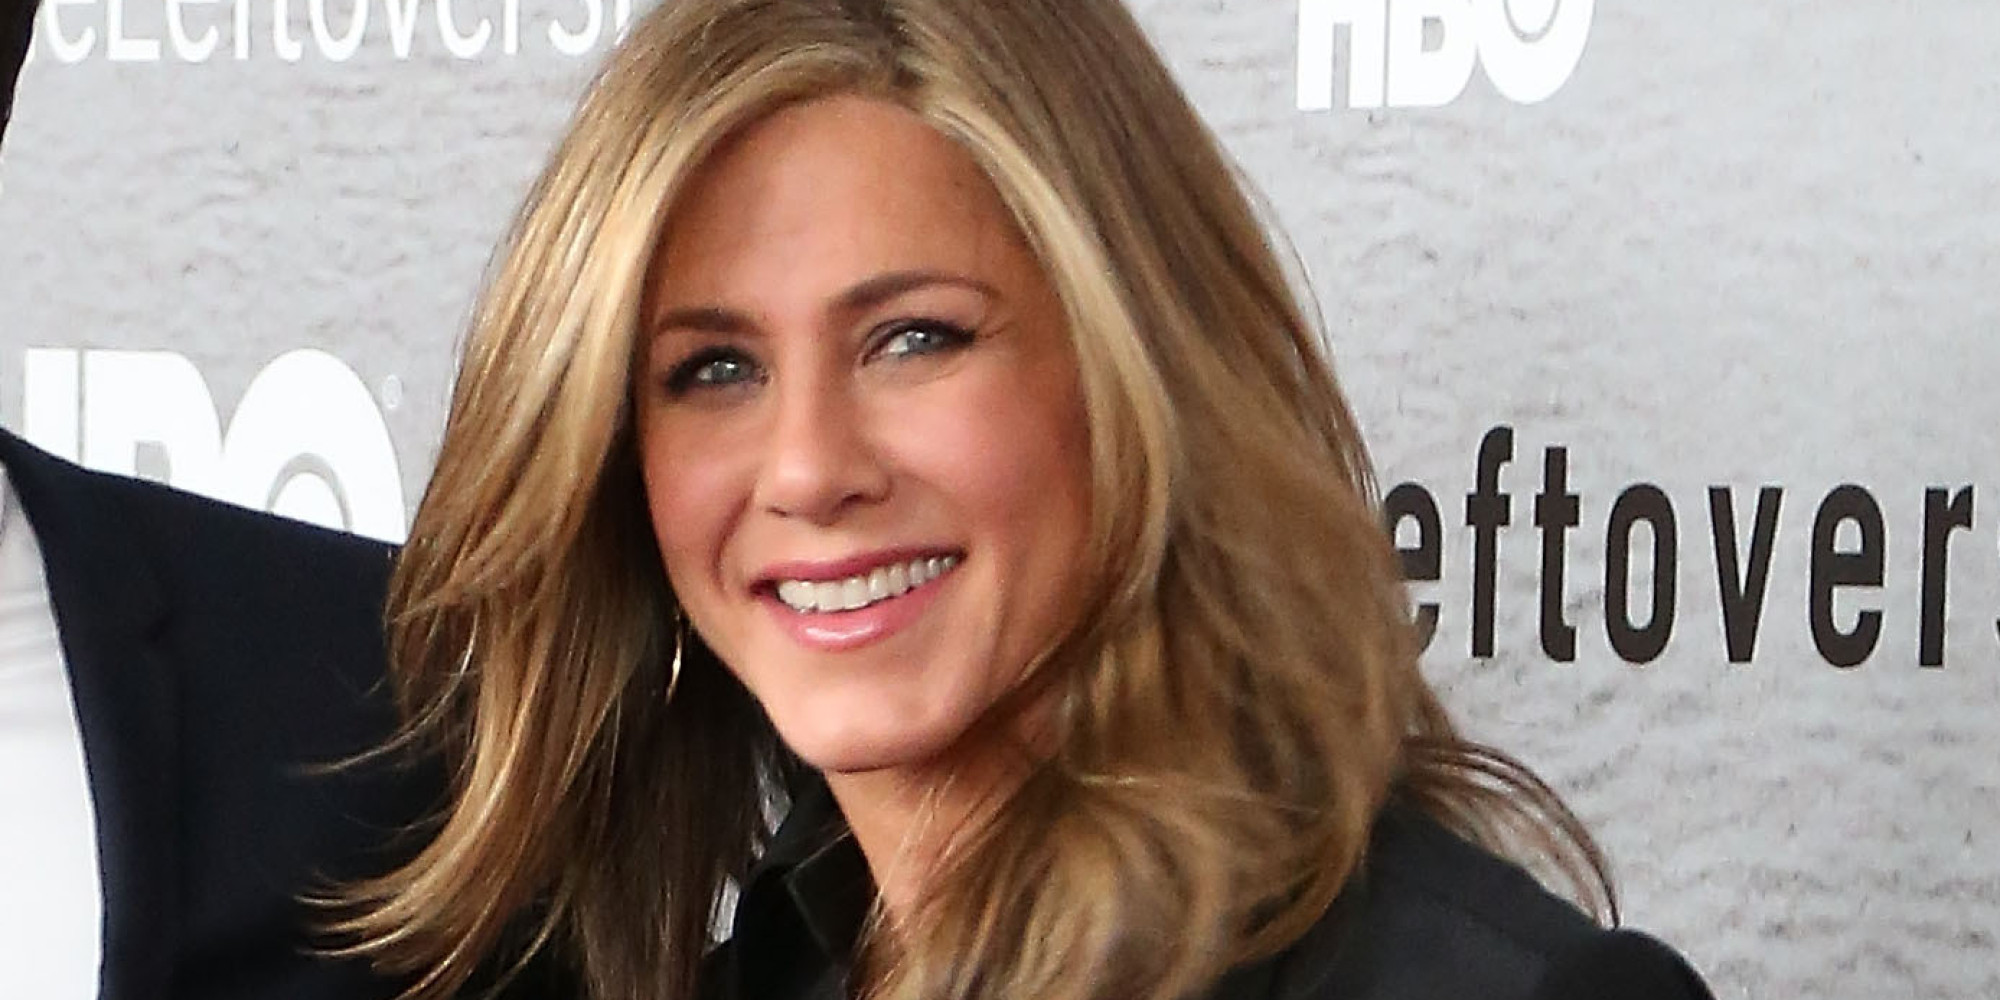 Jennifer Aniston: Jennifer Aniston Says Her 'Value As A Woman' Has Nothing